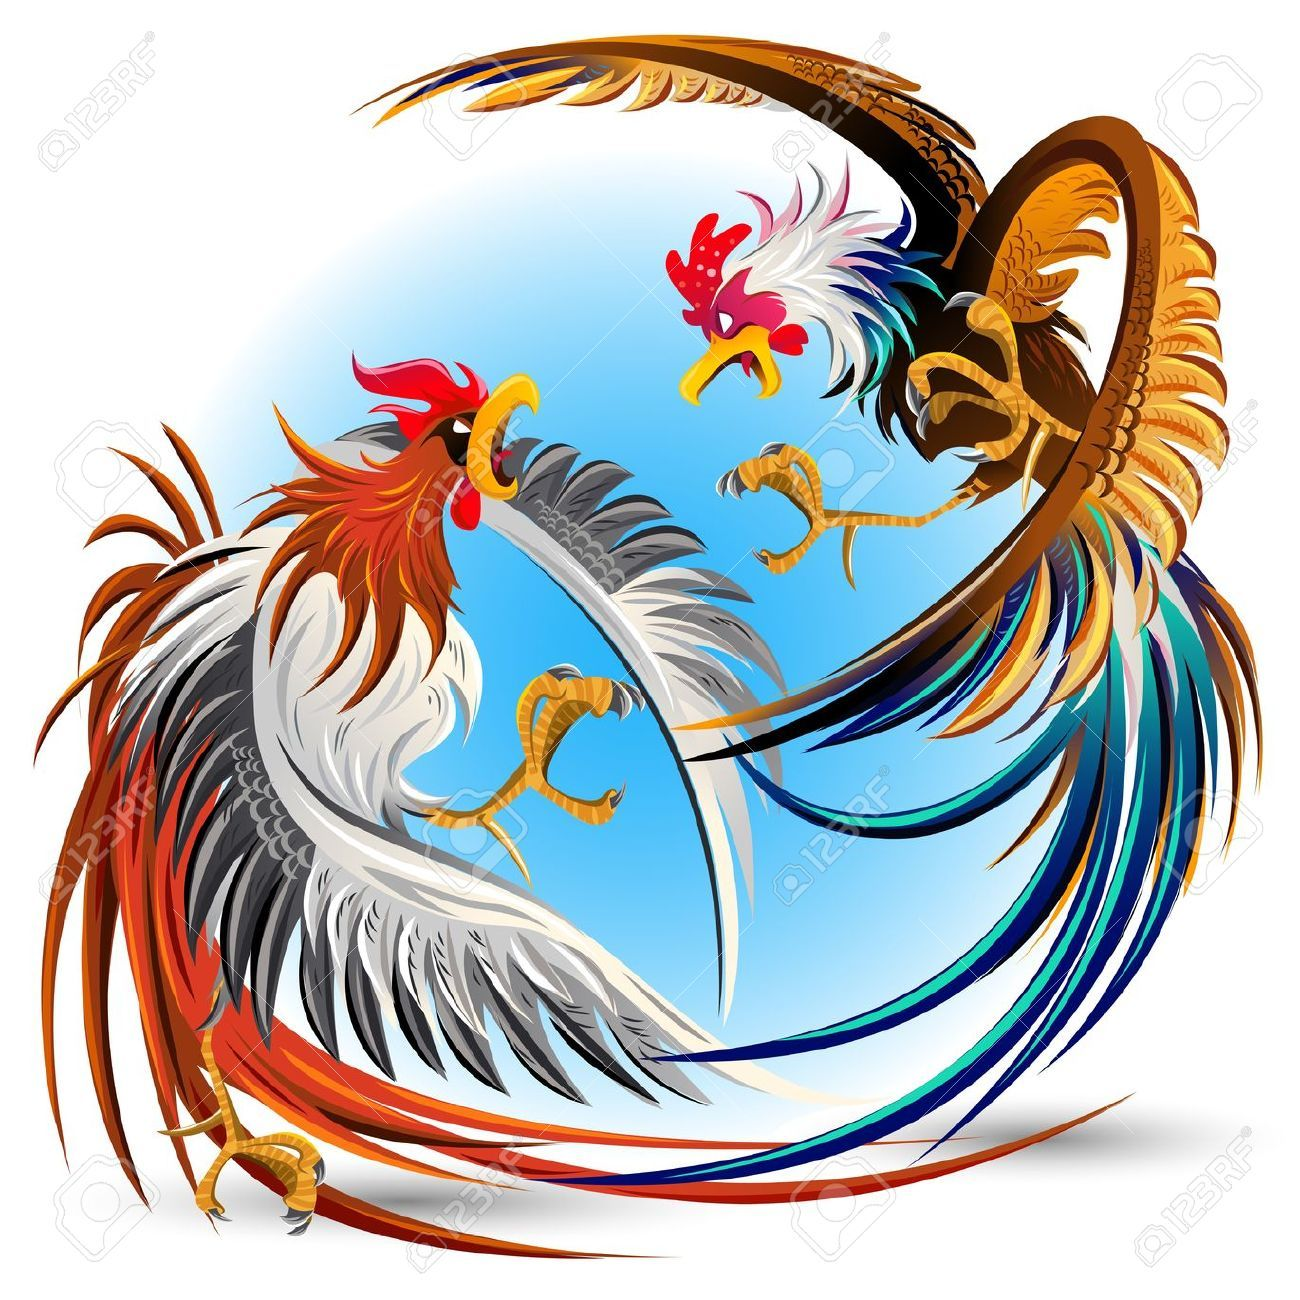 Rooster Fight Stock Vector Illustration And Royalty Free Rooster.